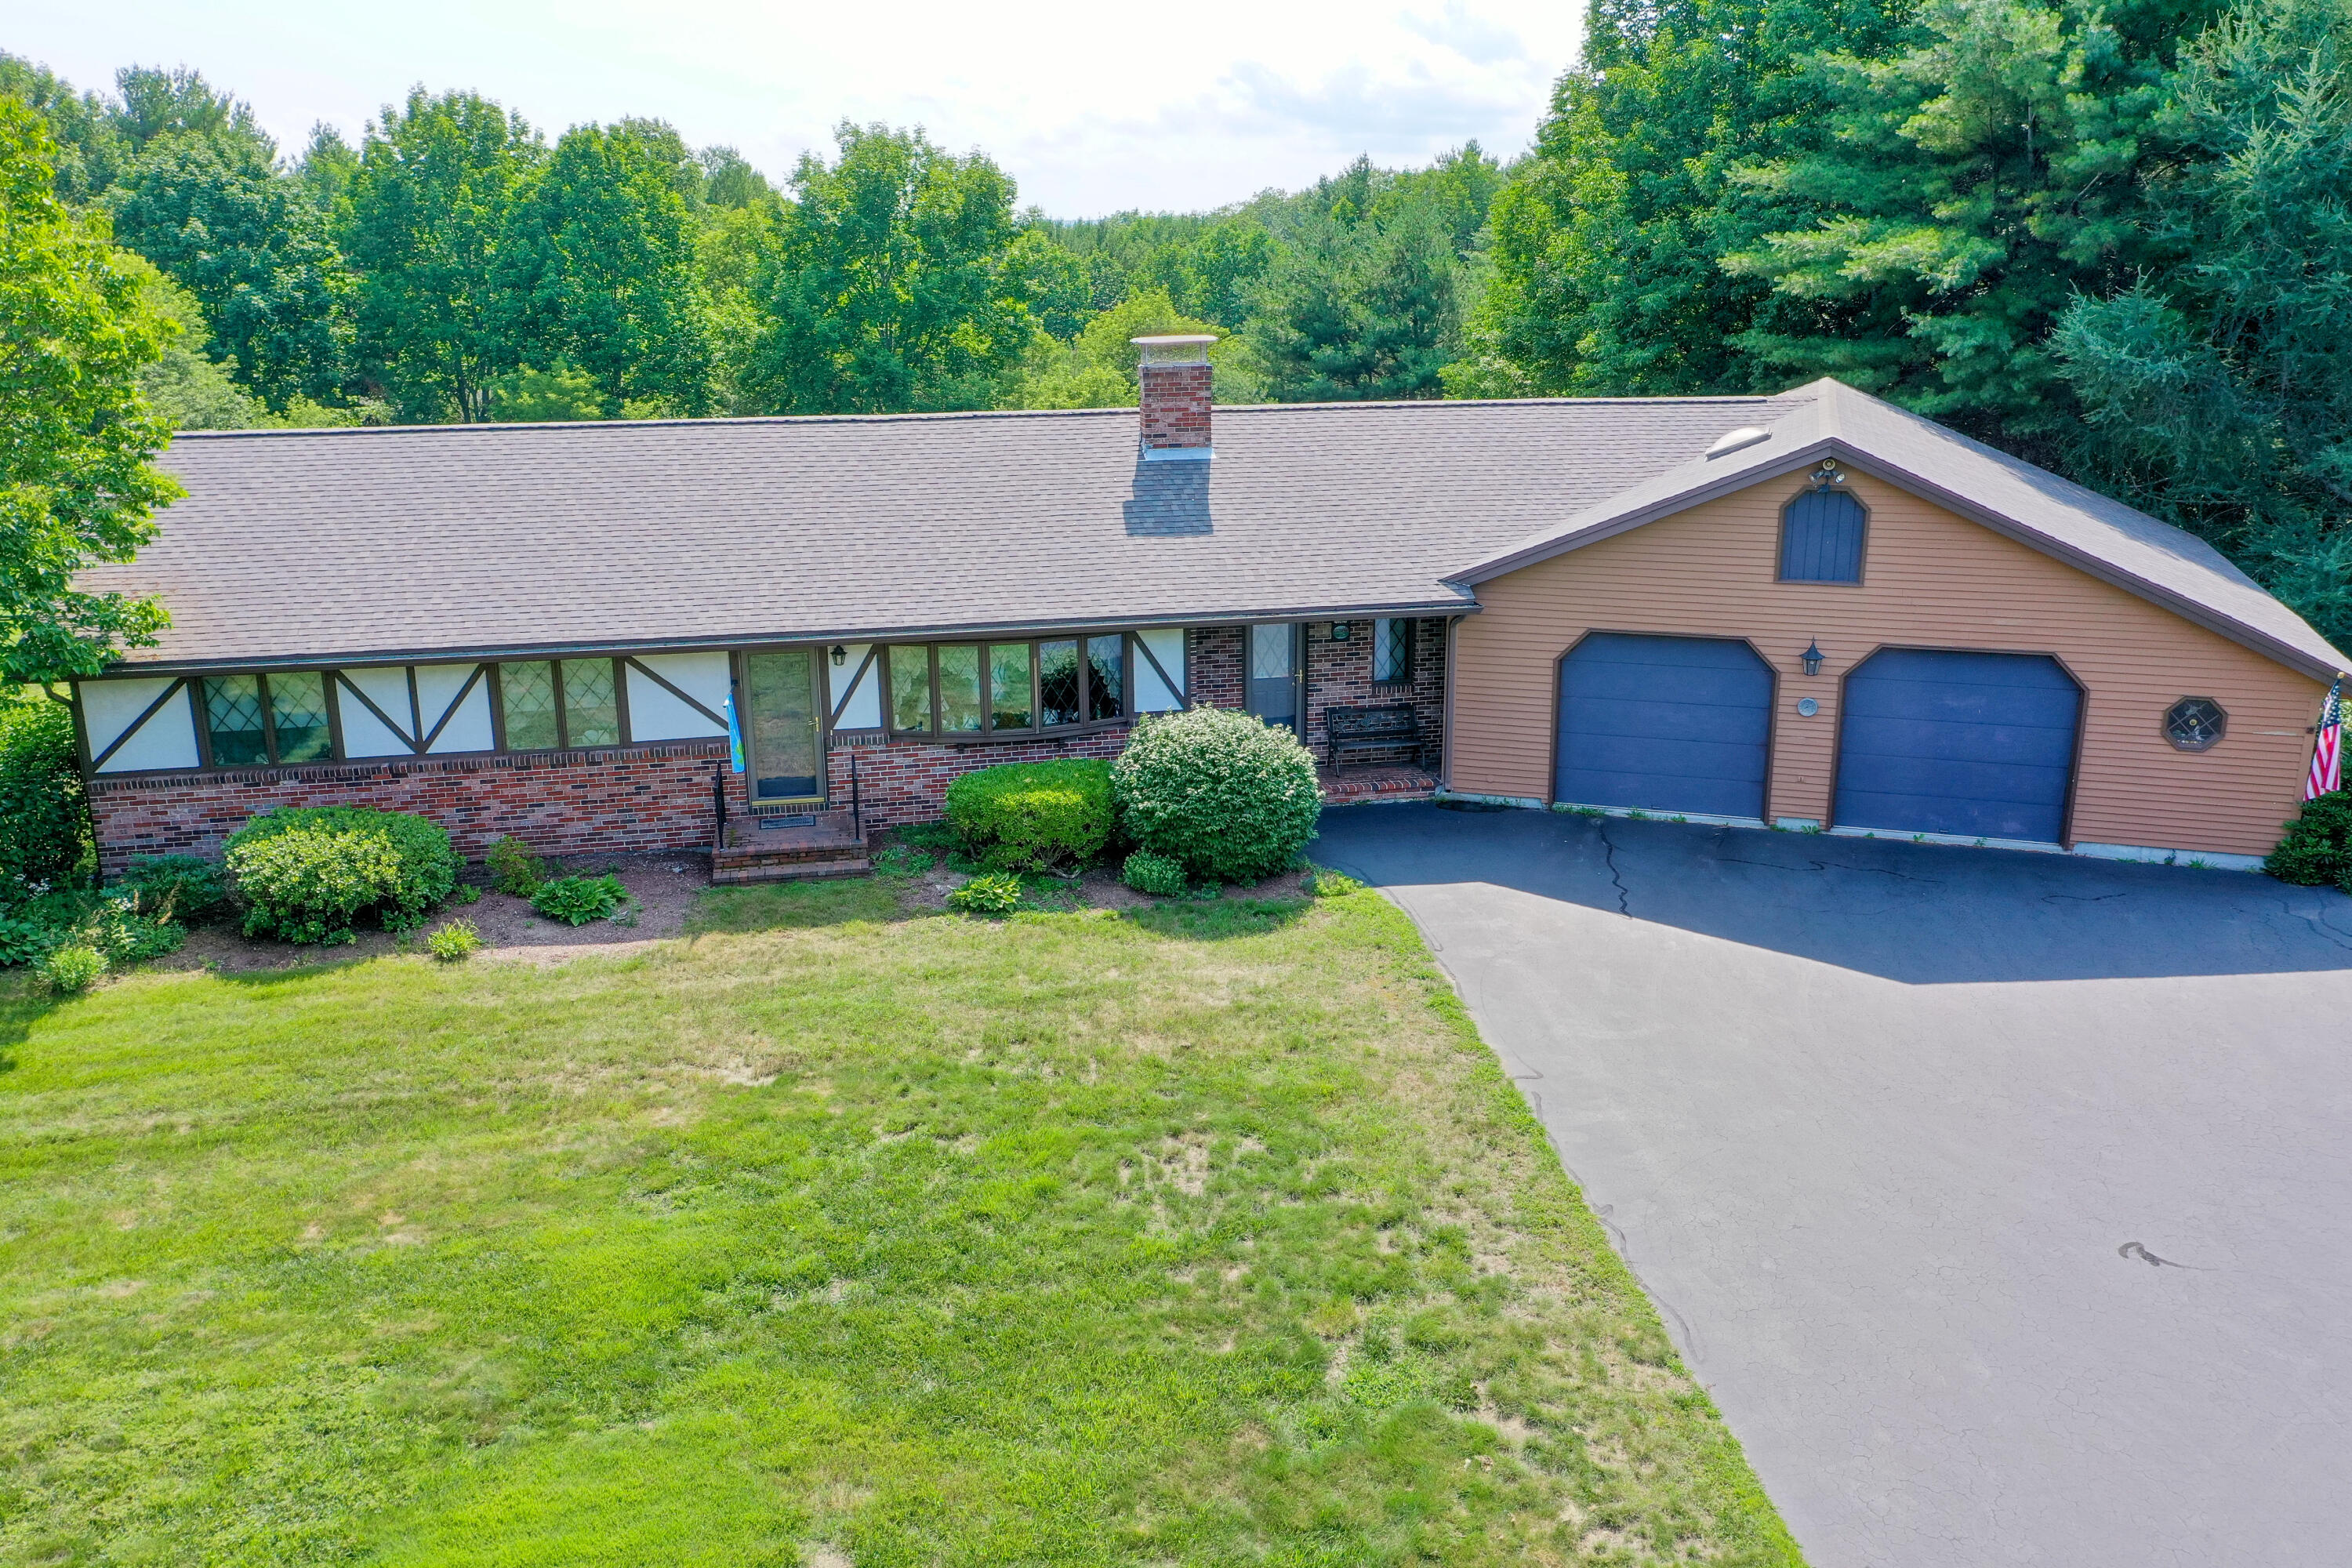 Main image for MLS listing 1501609